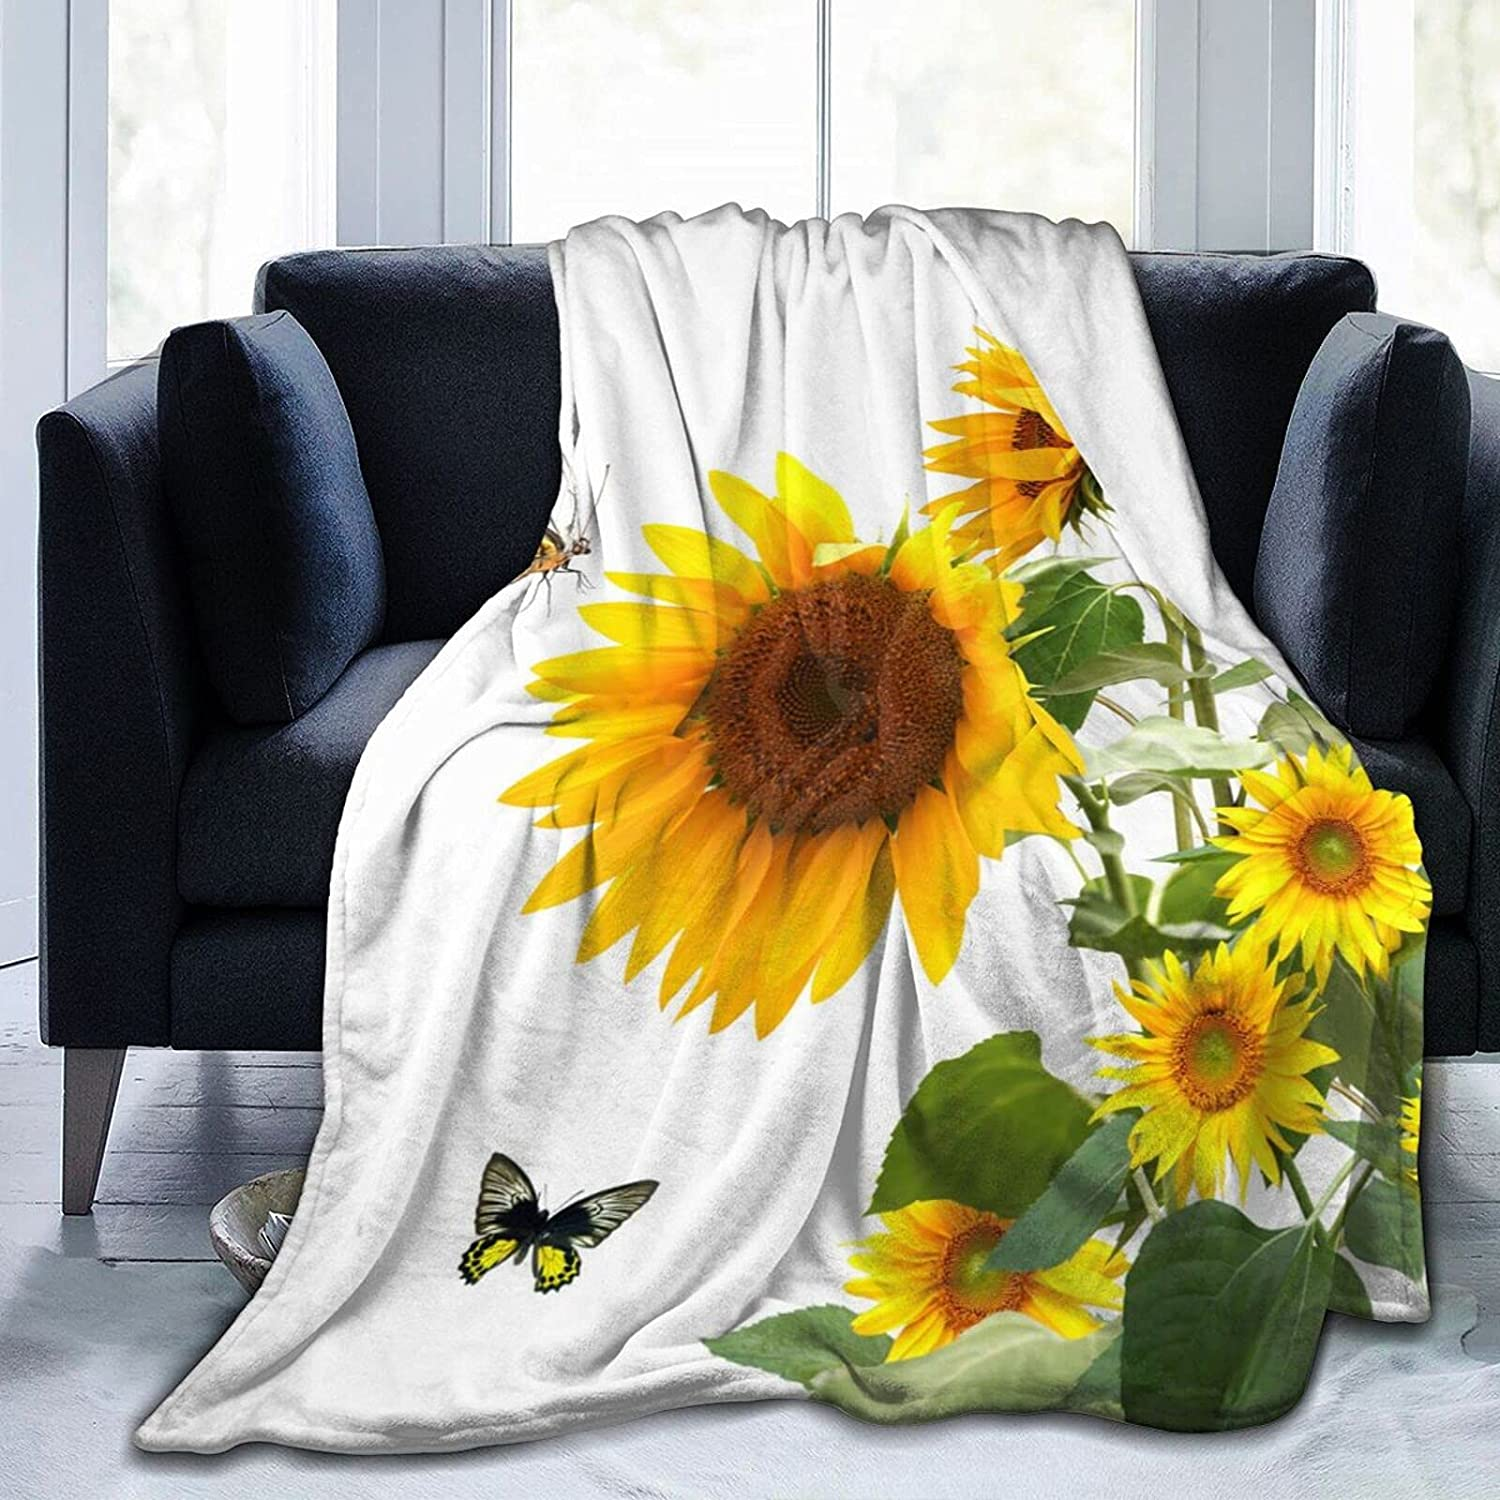 Flower Butterfly Yellow Attention brand Floral Green Throw Now free shipping Leaves Soft Blanket T